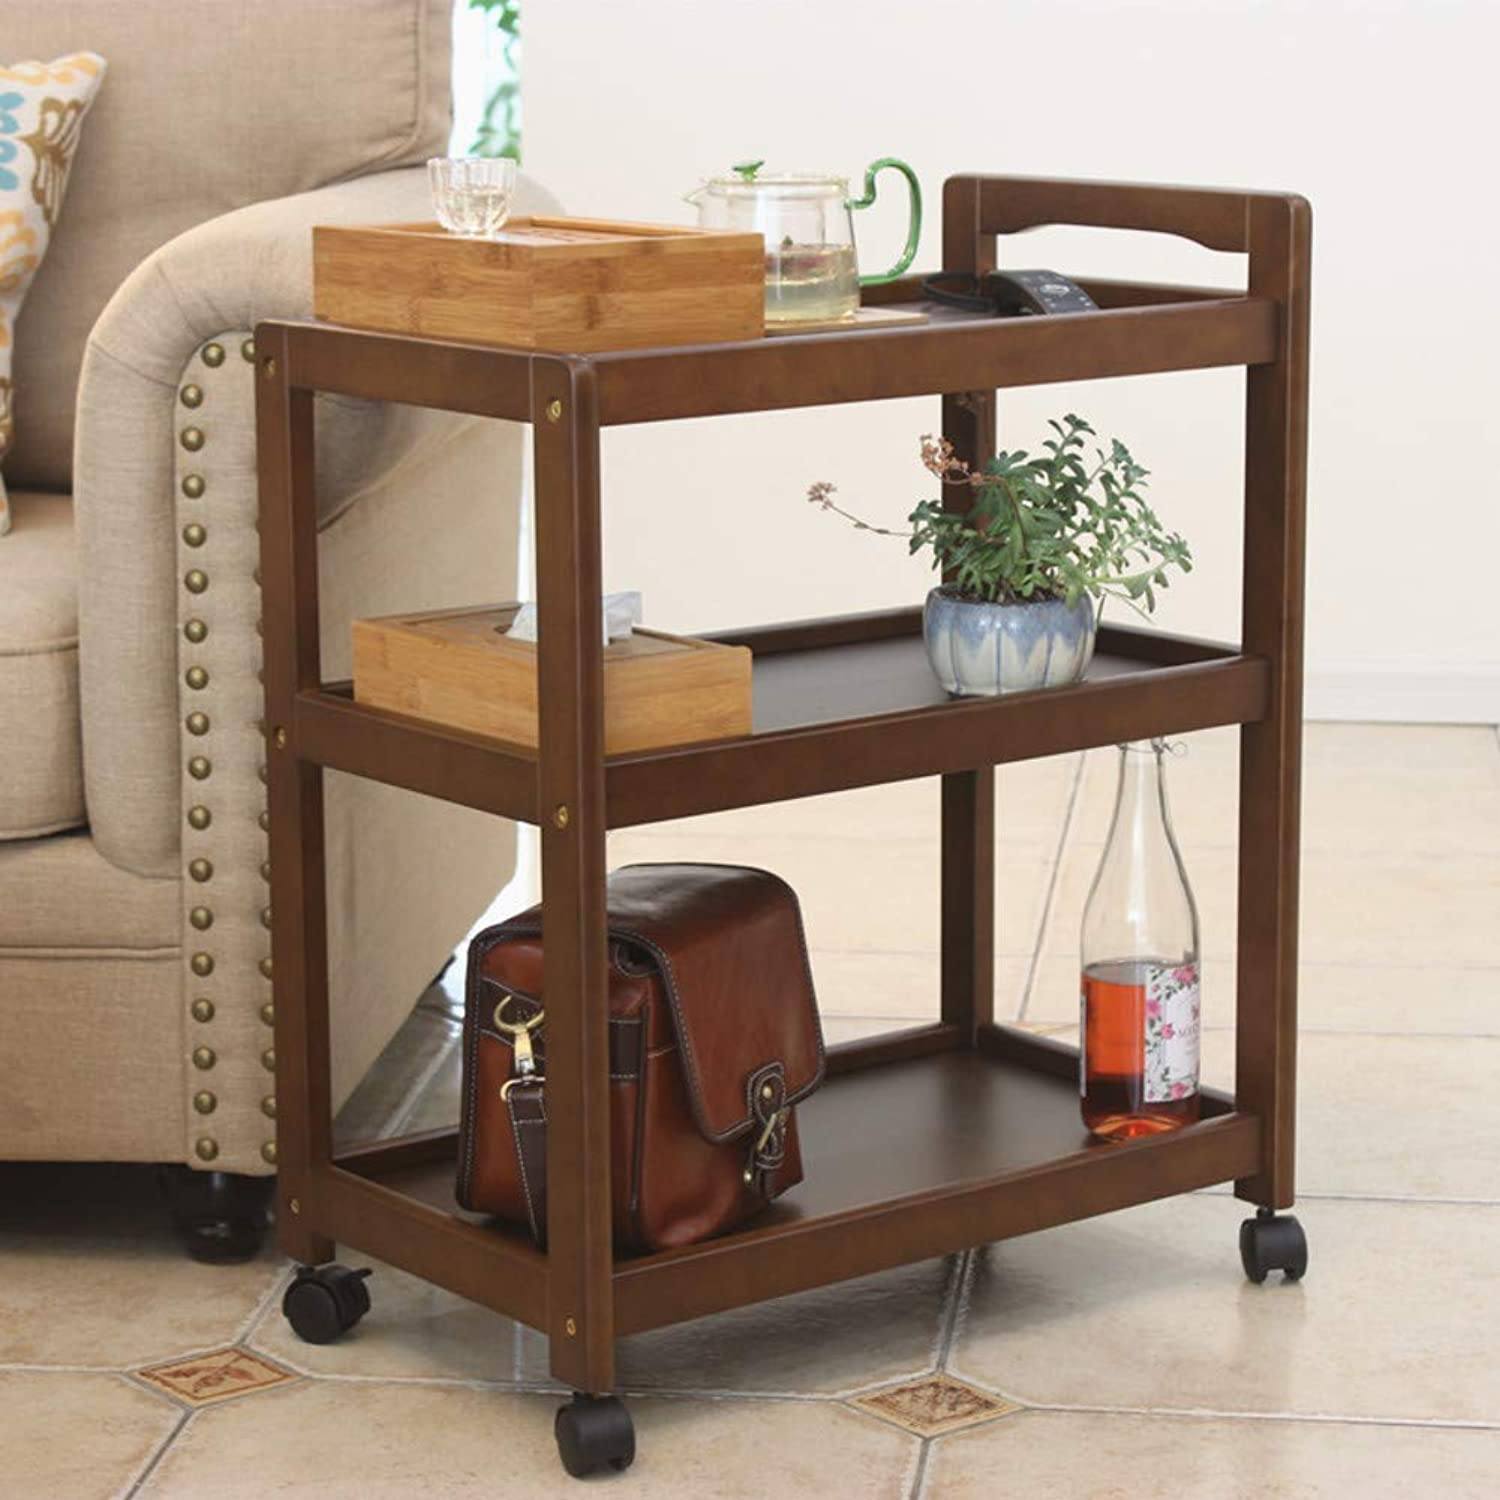 3-Shelf Wooden Kitchen cart,Multi-Purpose bar cart Serving cart with 4 Wheels Night Stand Table Sofa Table End Table for Restaurant Hotel-B 59x33x73cm(23x13x29)